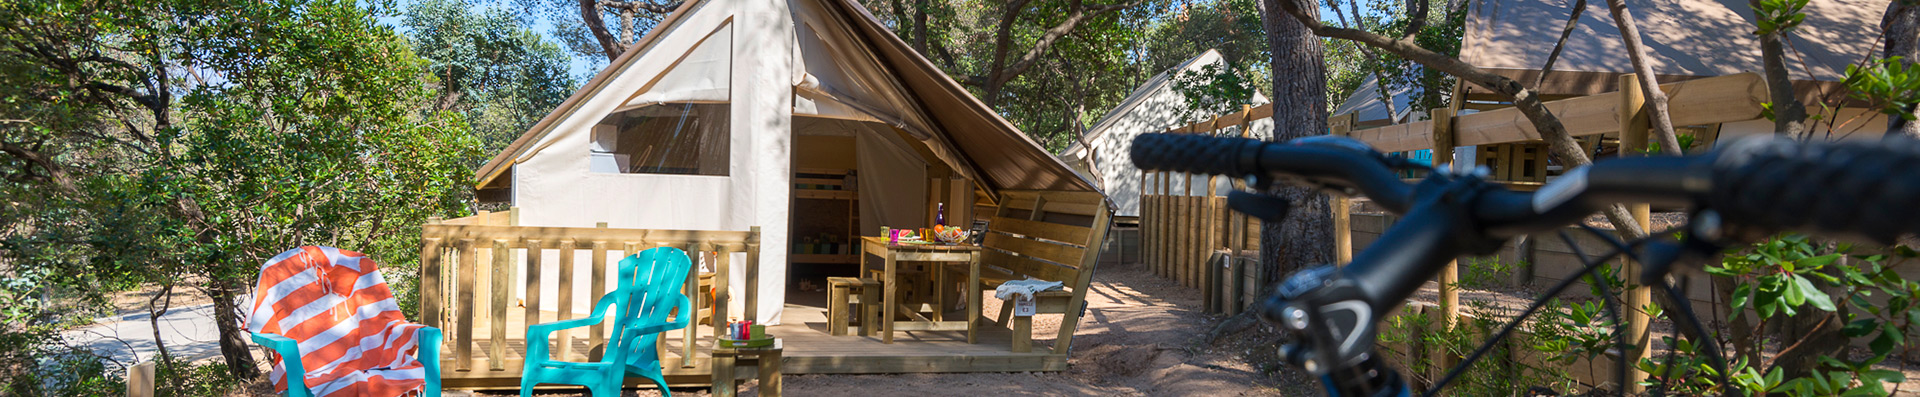 camping-giens-a-hyeres-cabane-toilee